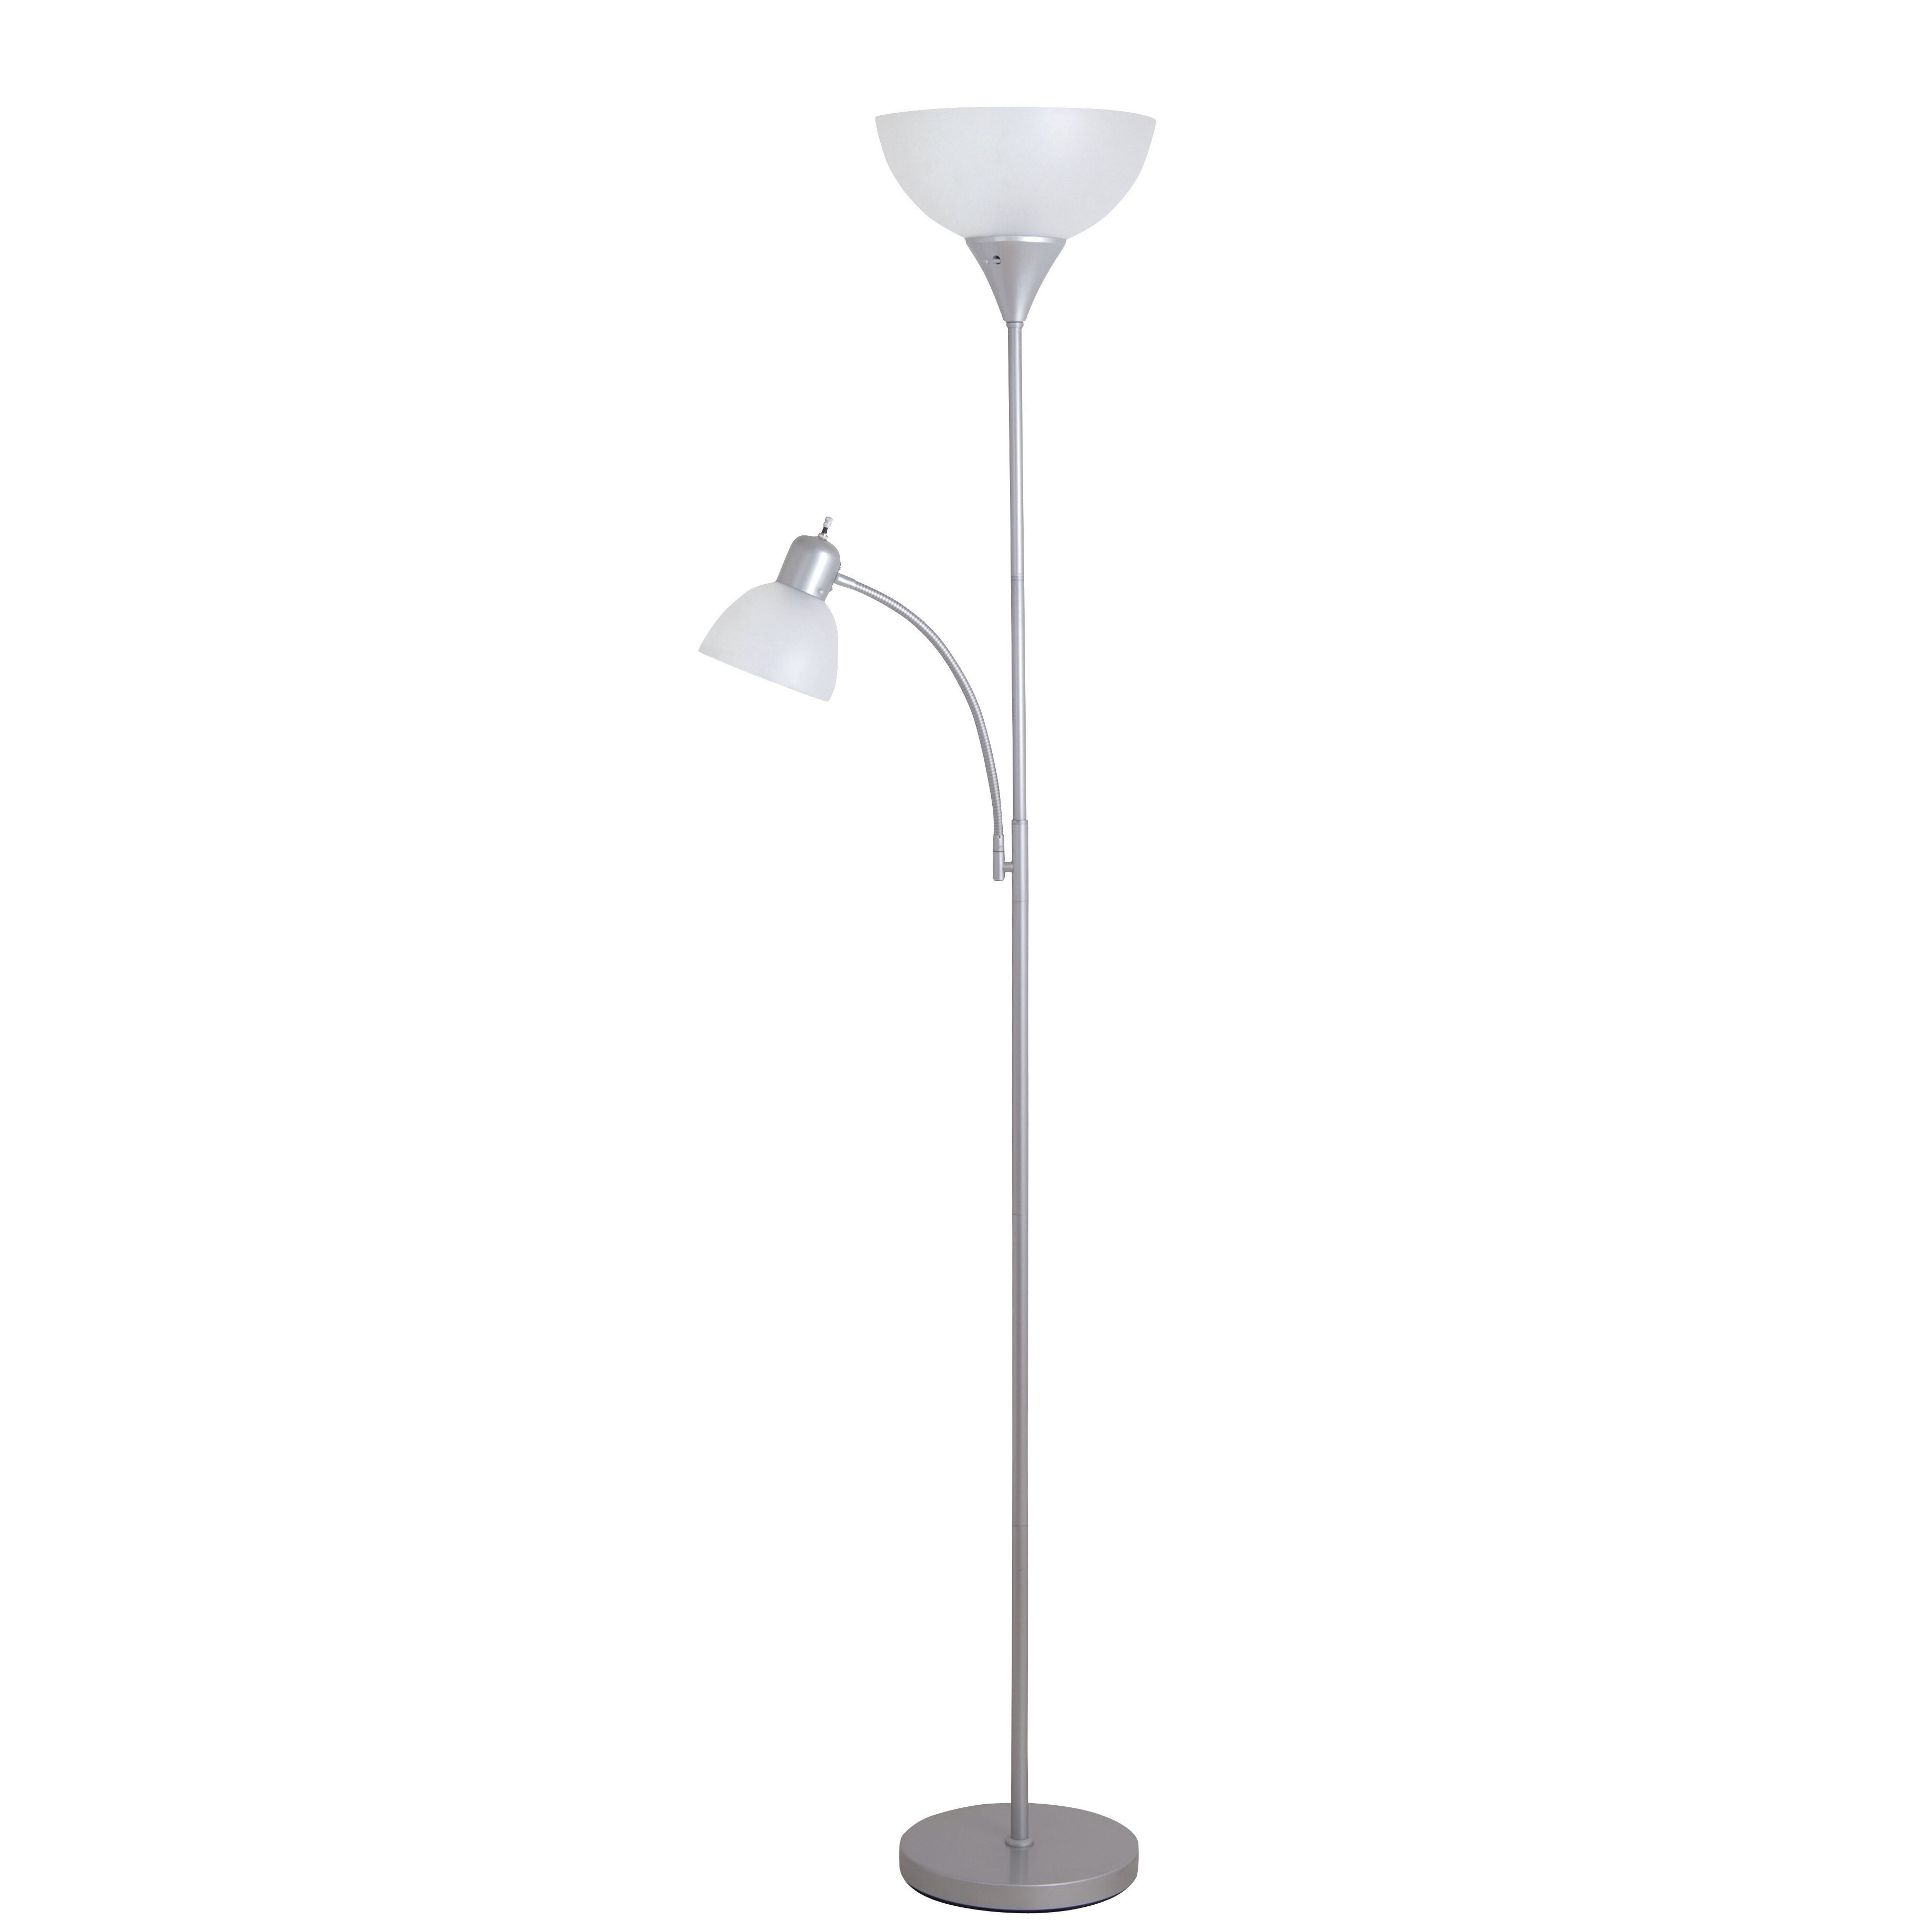 torchiere floor lamp with reading light reviews wayfair. Black Bedroom Furniture Sets. Home Design Ideas